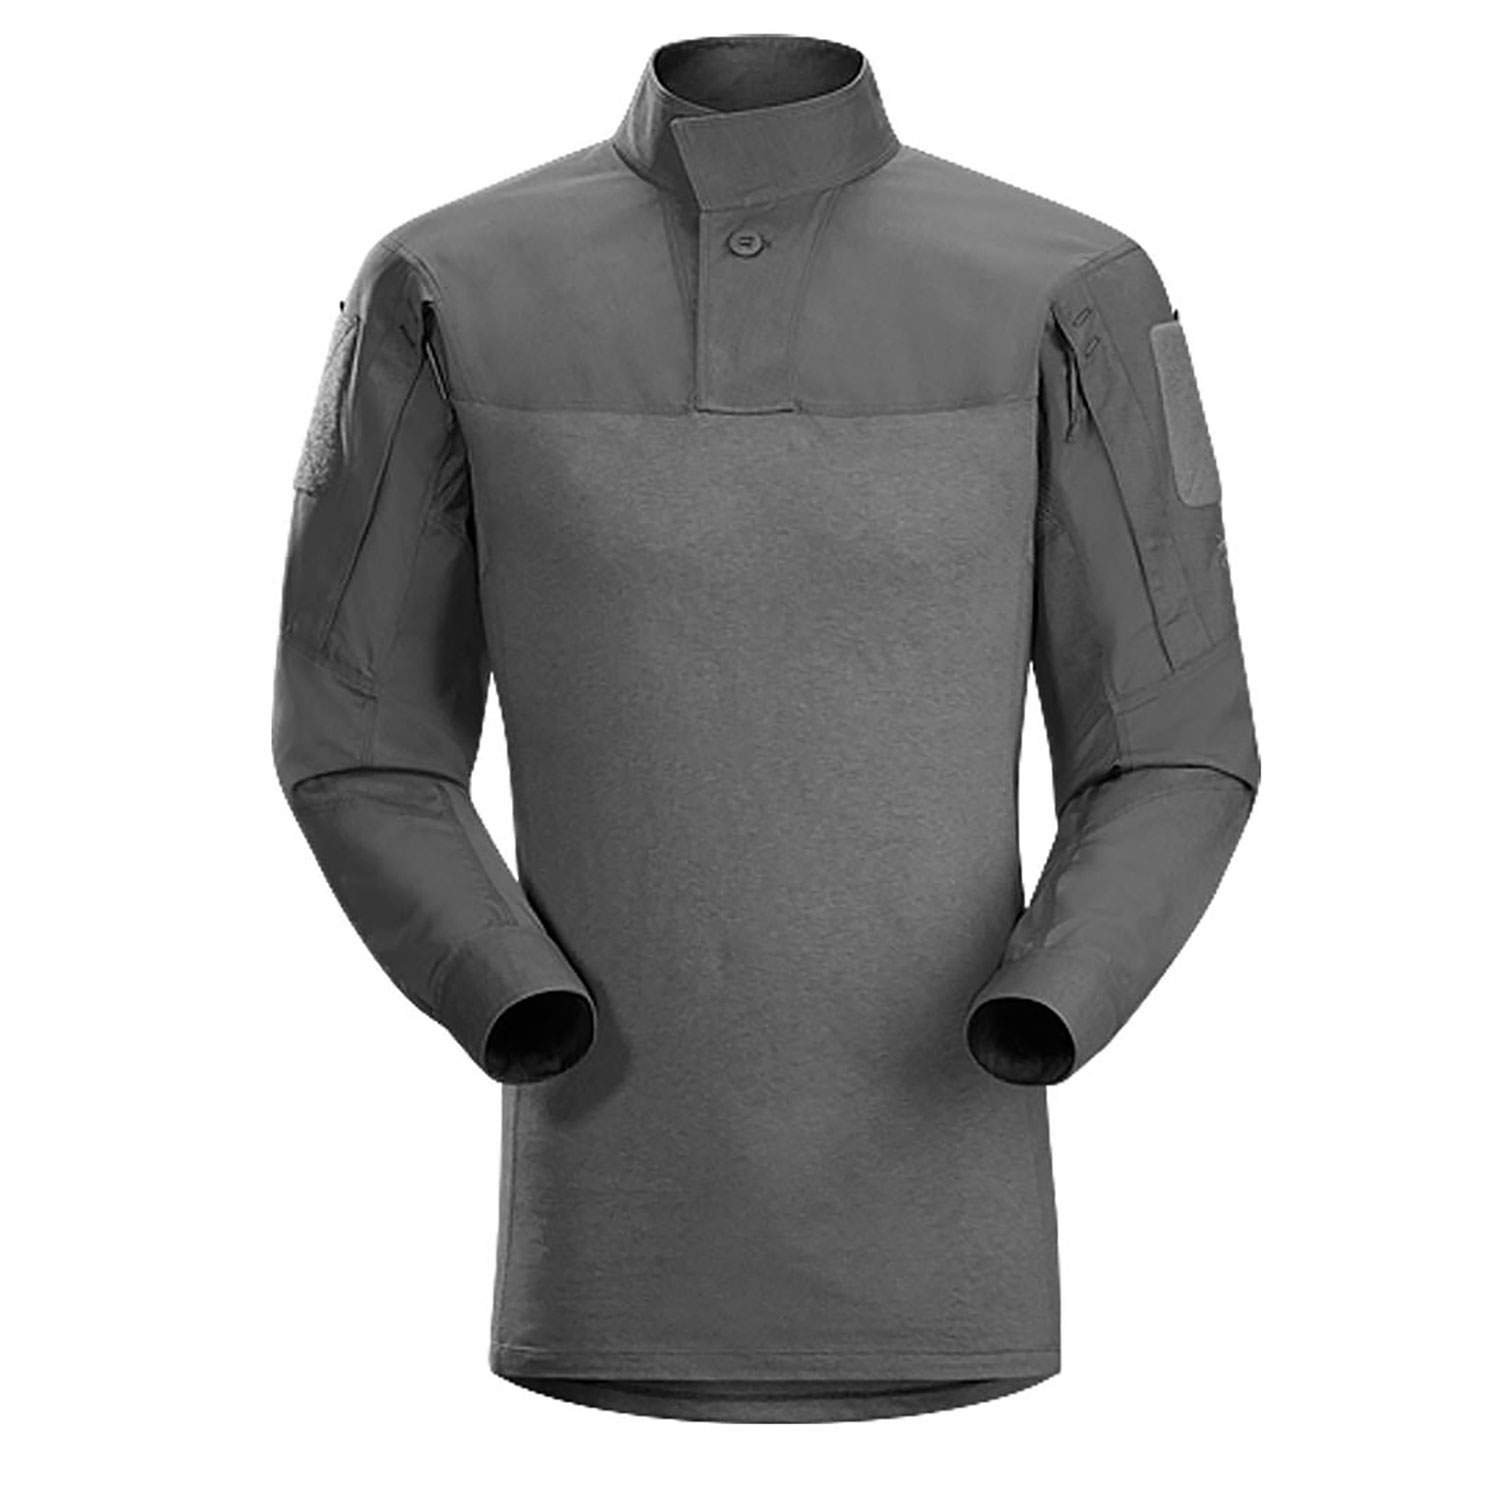 Arc'teryx Assault Shirt AR Wolf